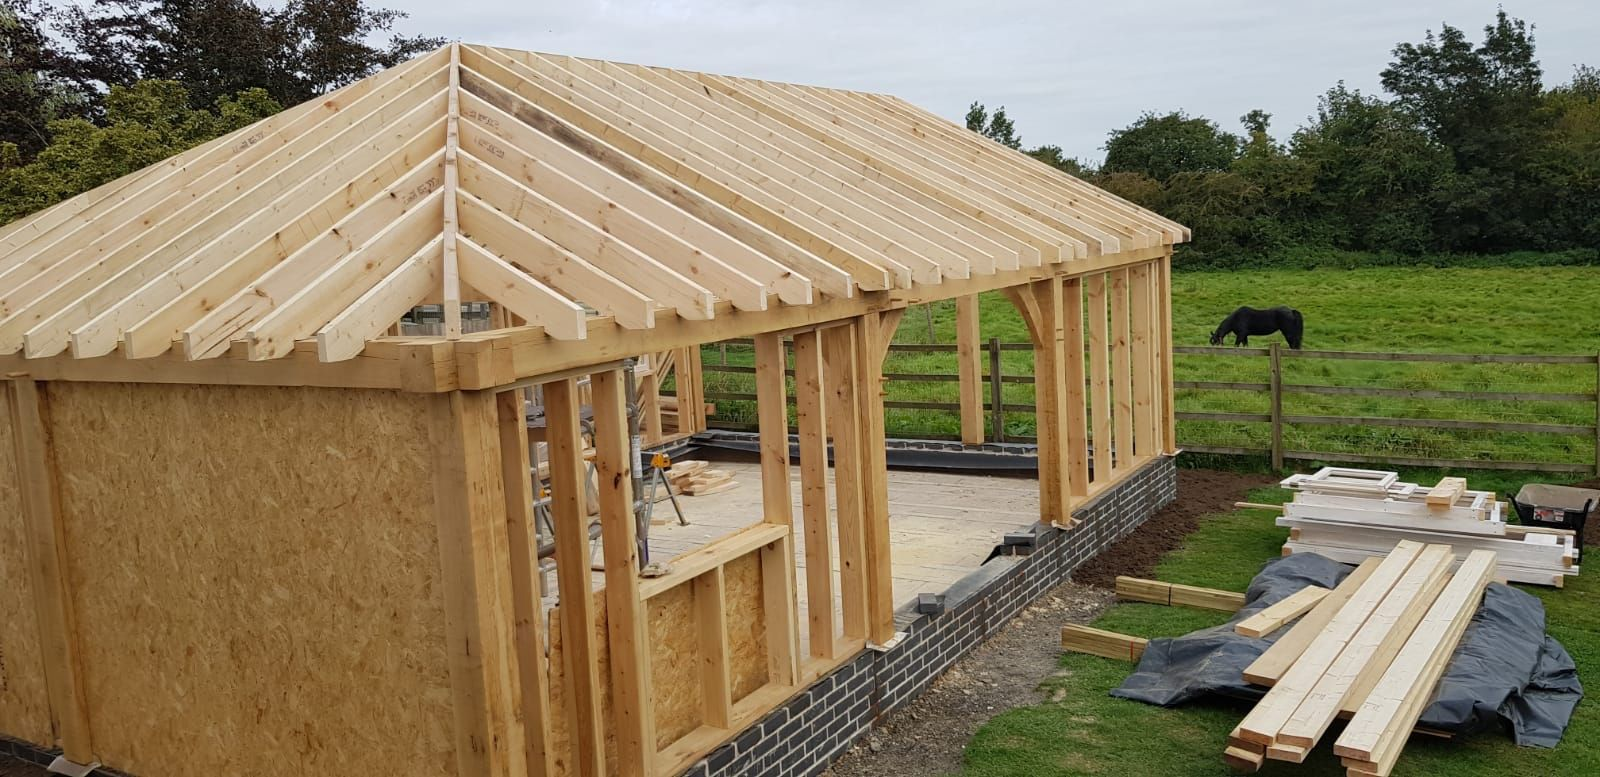 Roof  rafters in place.